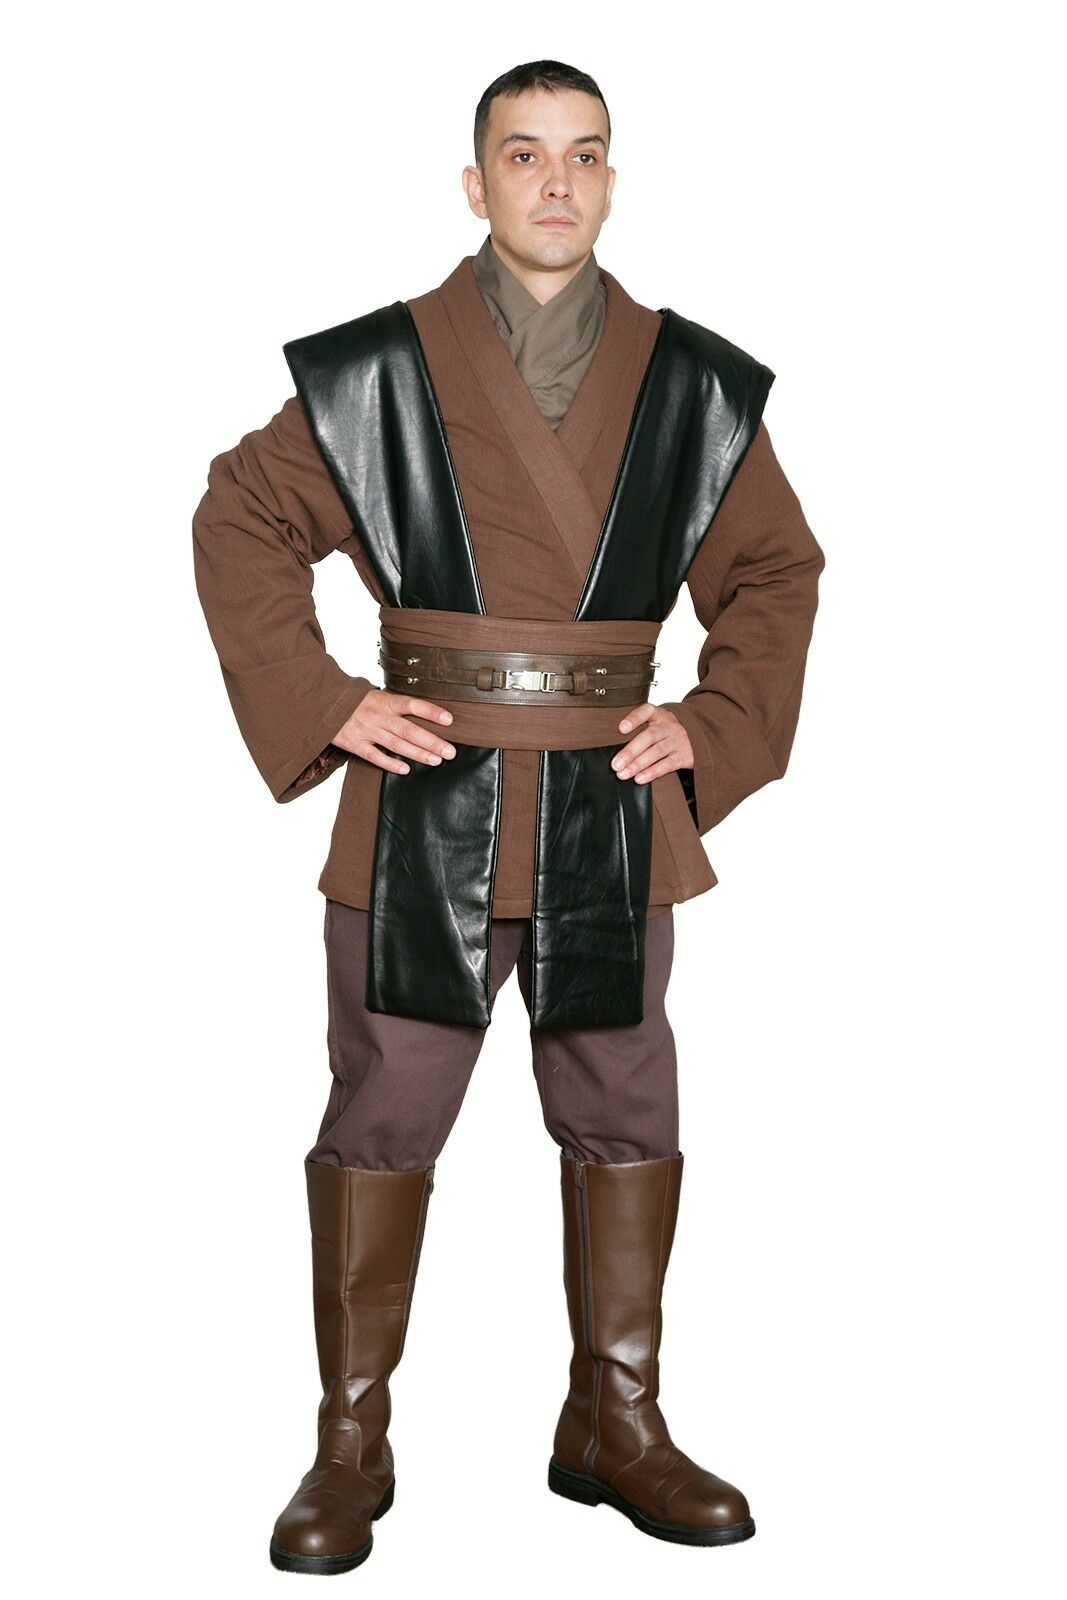 star wars anakin skywalker jedi costume quality replica. Black Bedroom Furniture Sets. Home Design Ideas